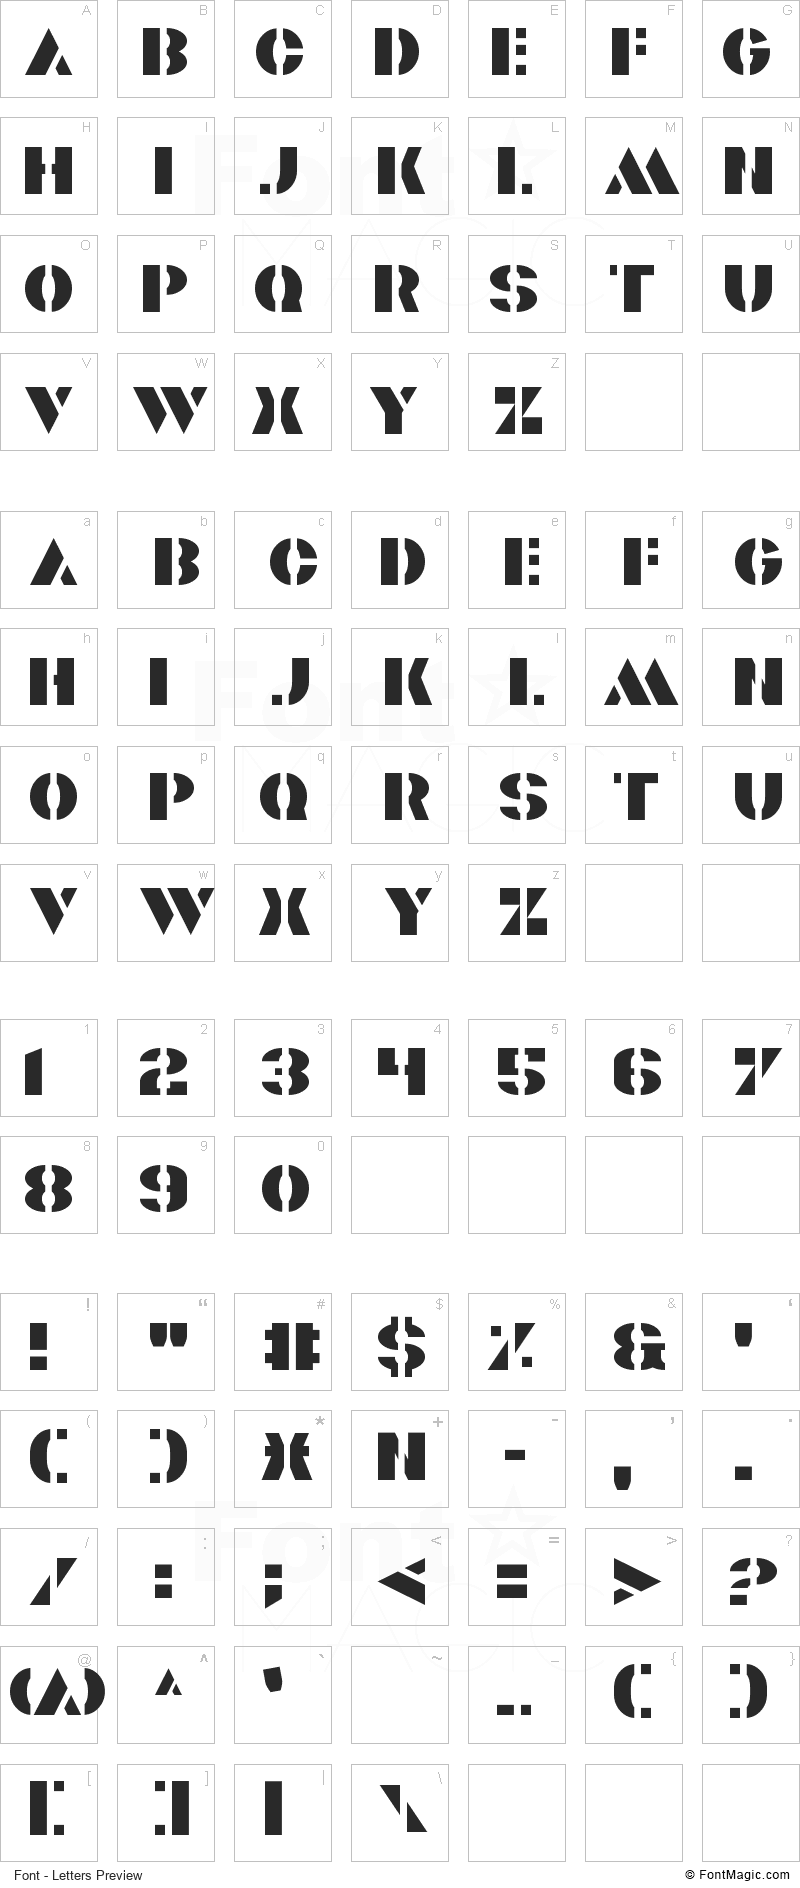 Valiant Font - All Latters Preview Chart